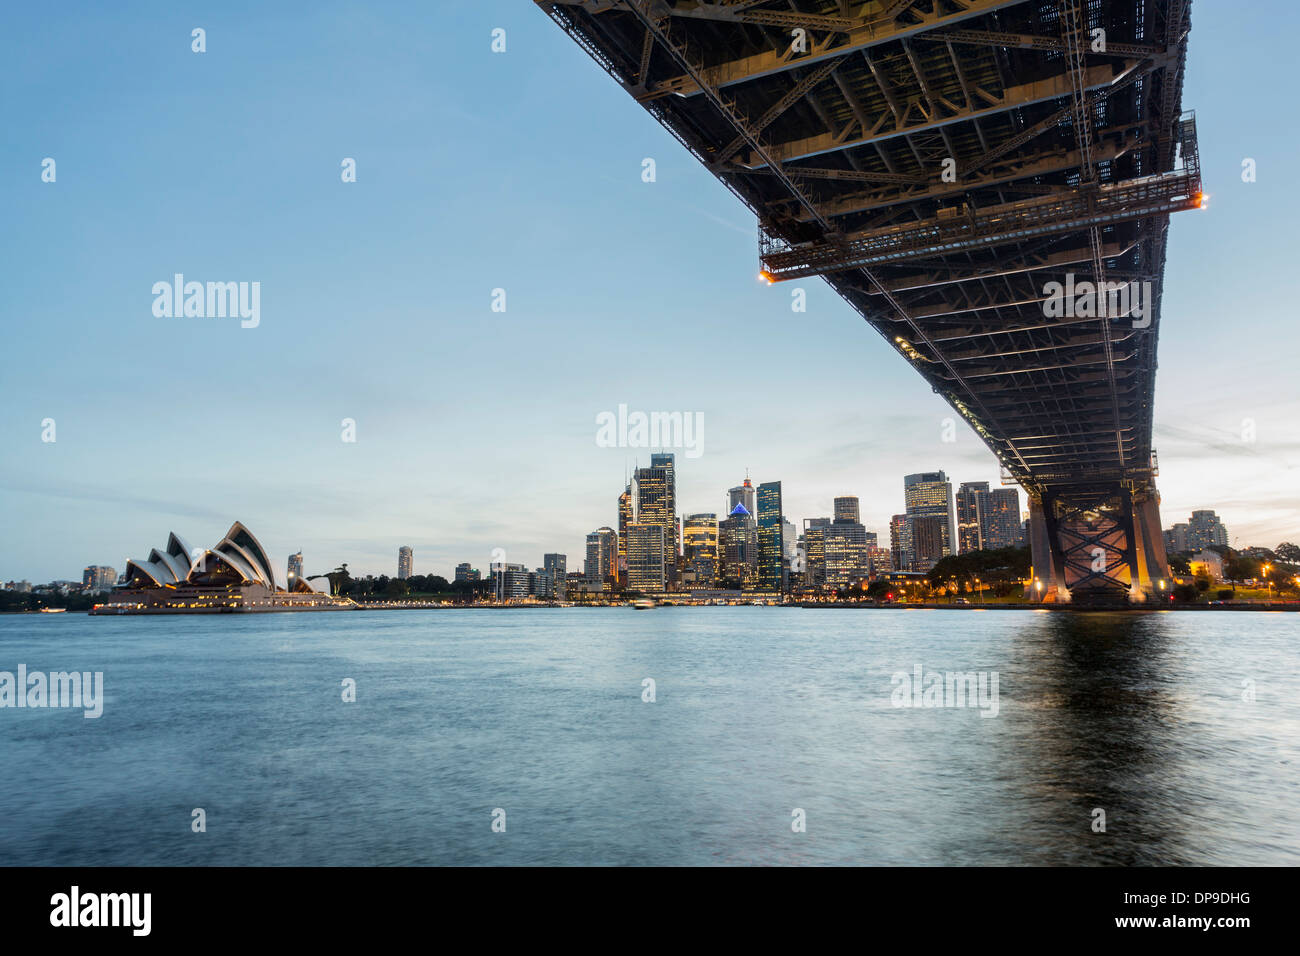 Under the Sydney Harbour Bridge at sunset, Sydney, Australia - Stock Image